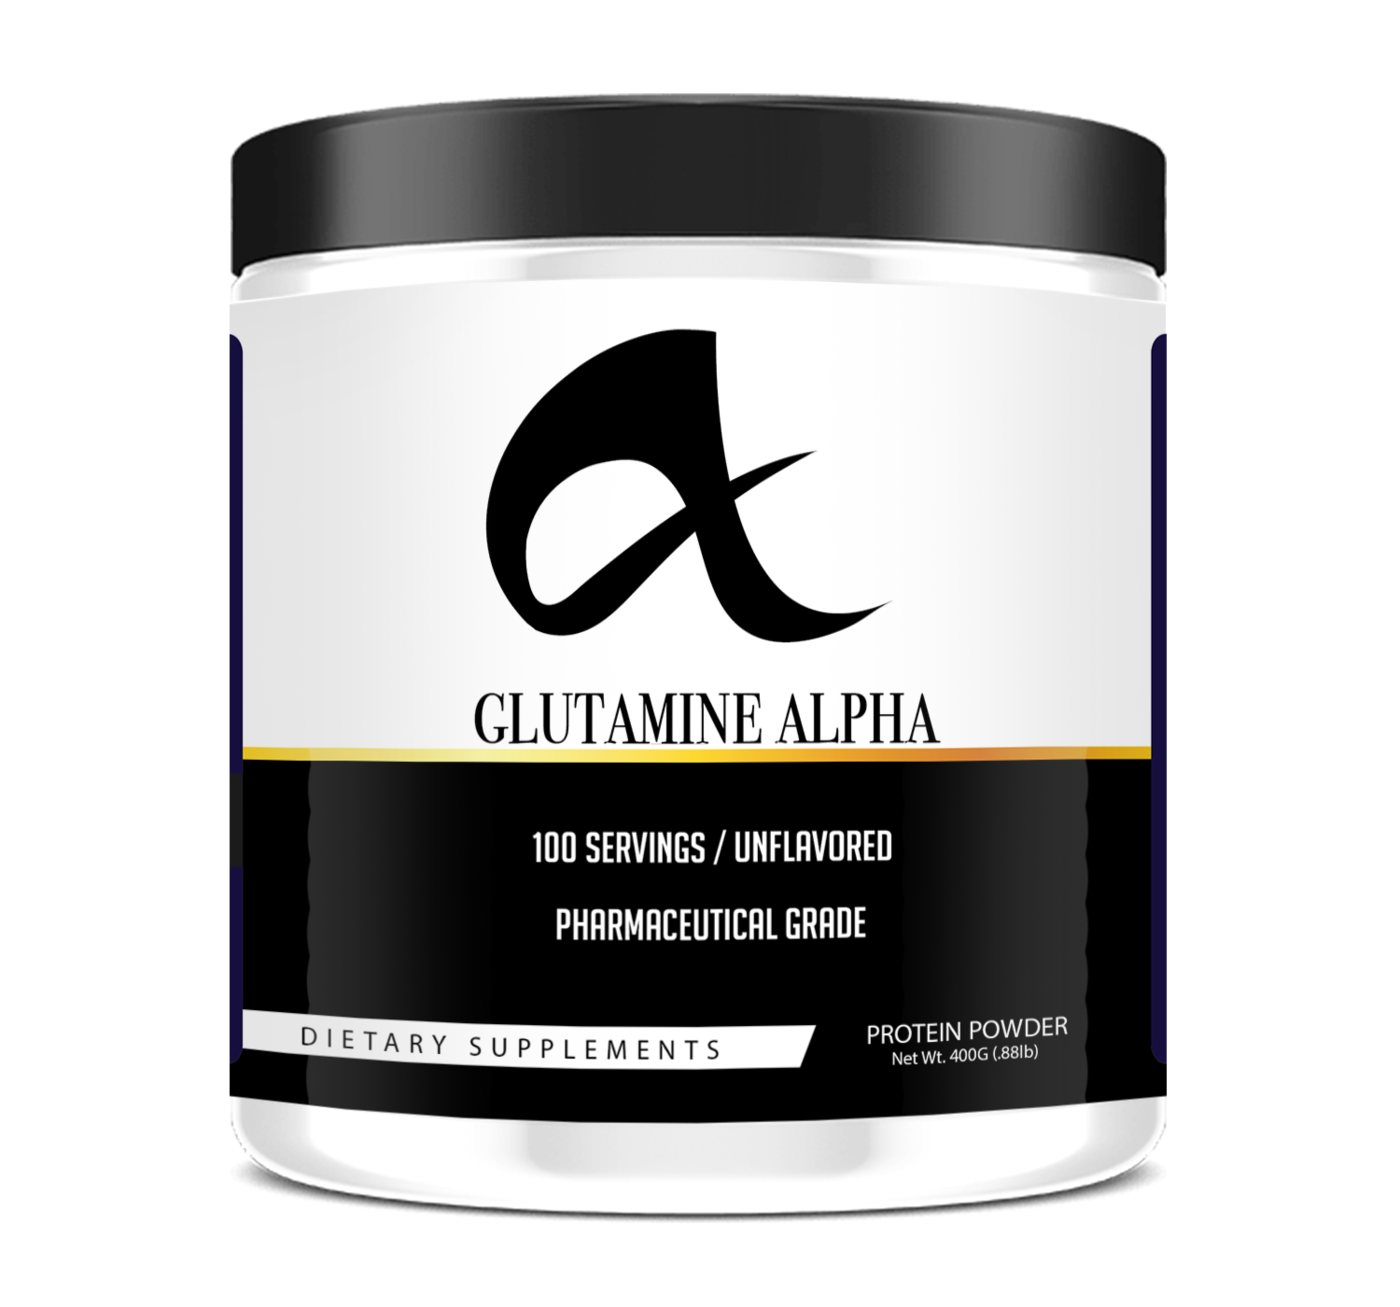 What miracles can a glutamine supplement do for you?